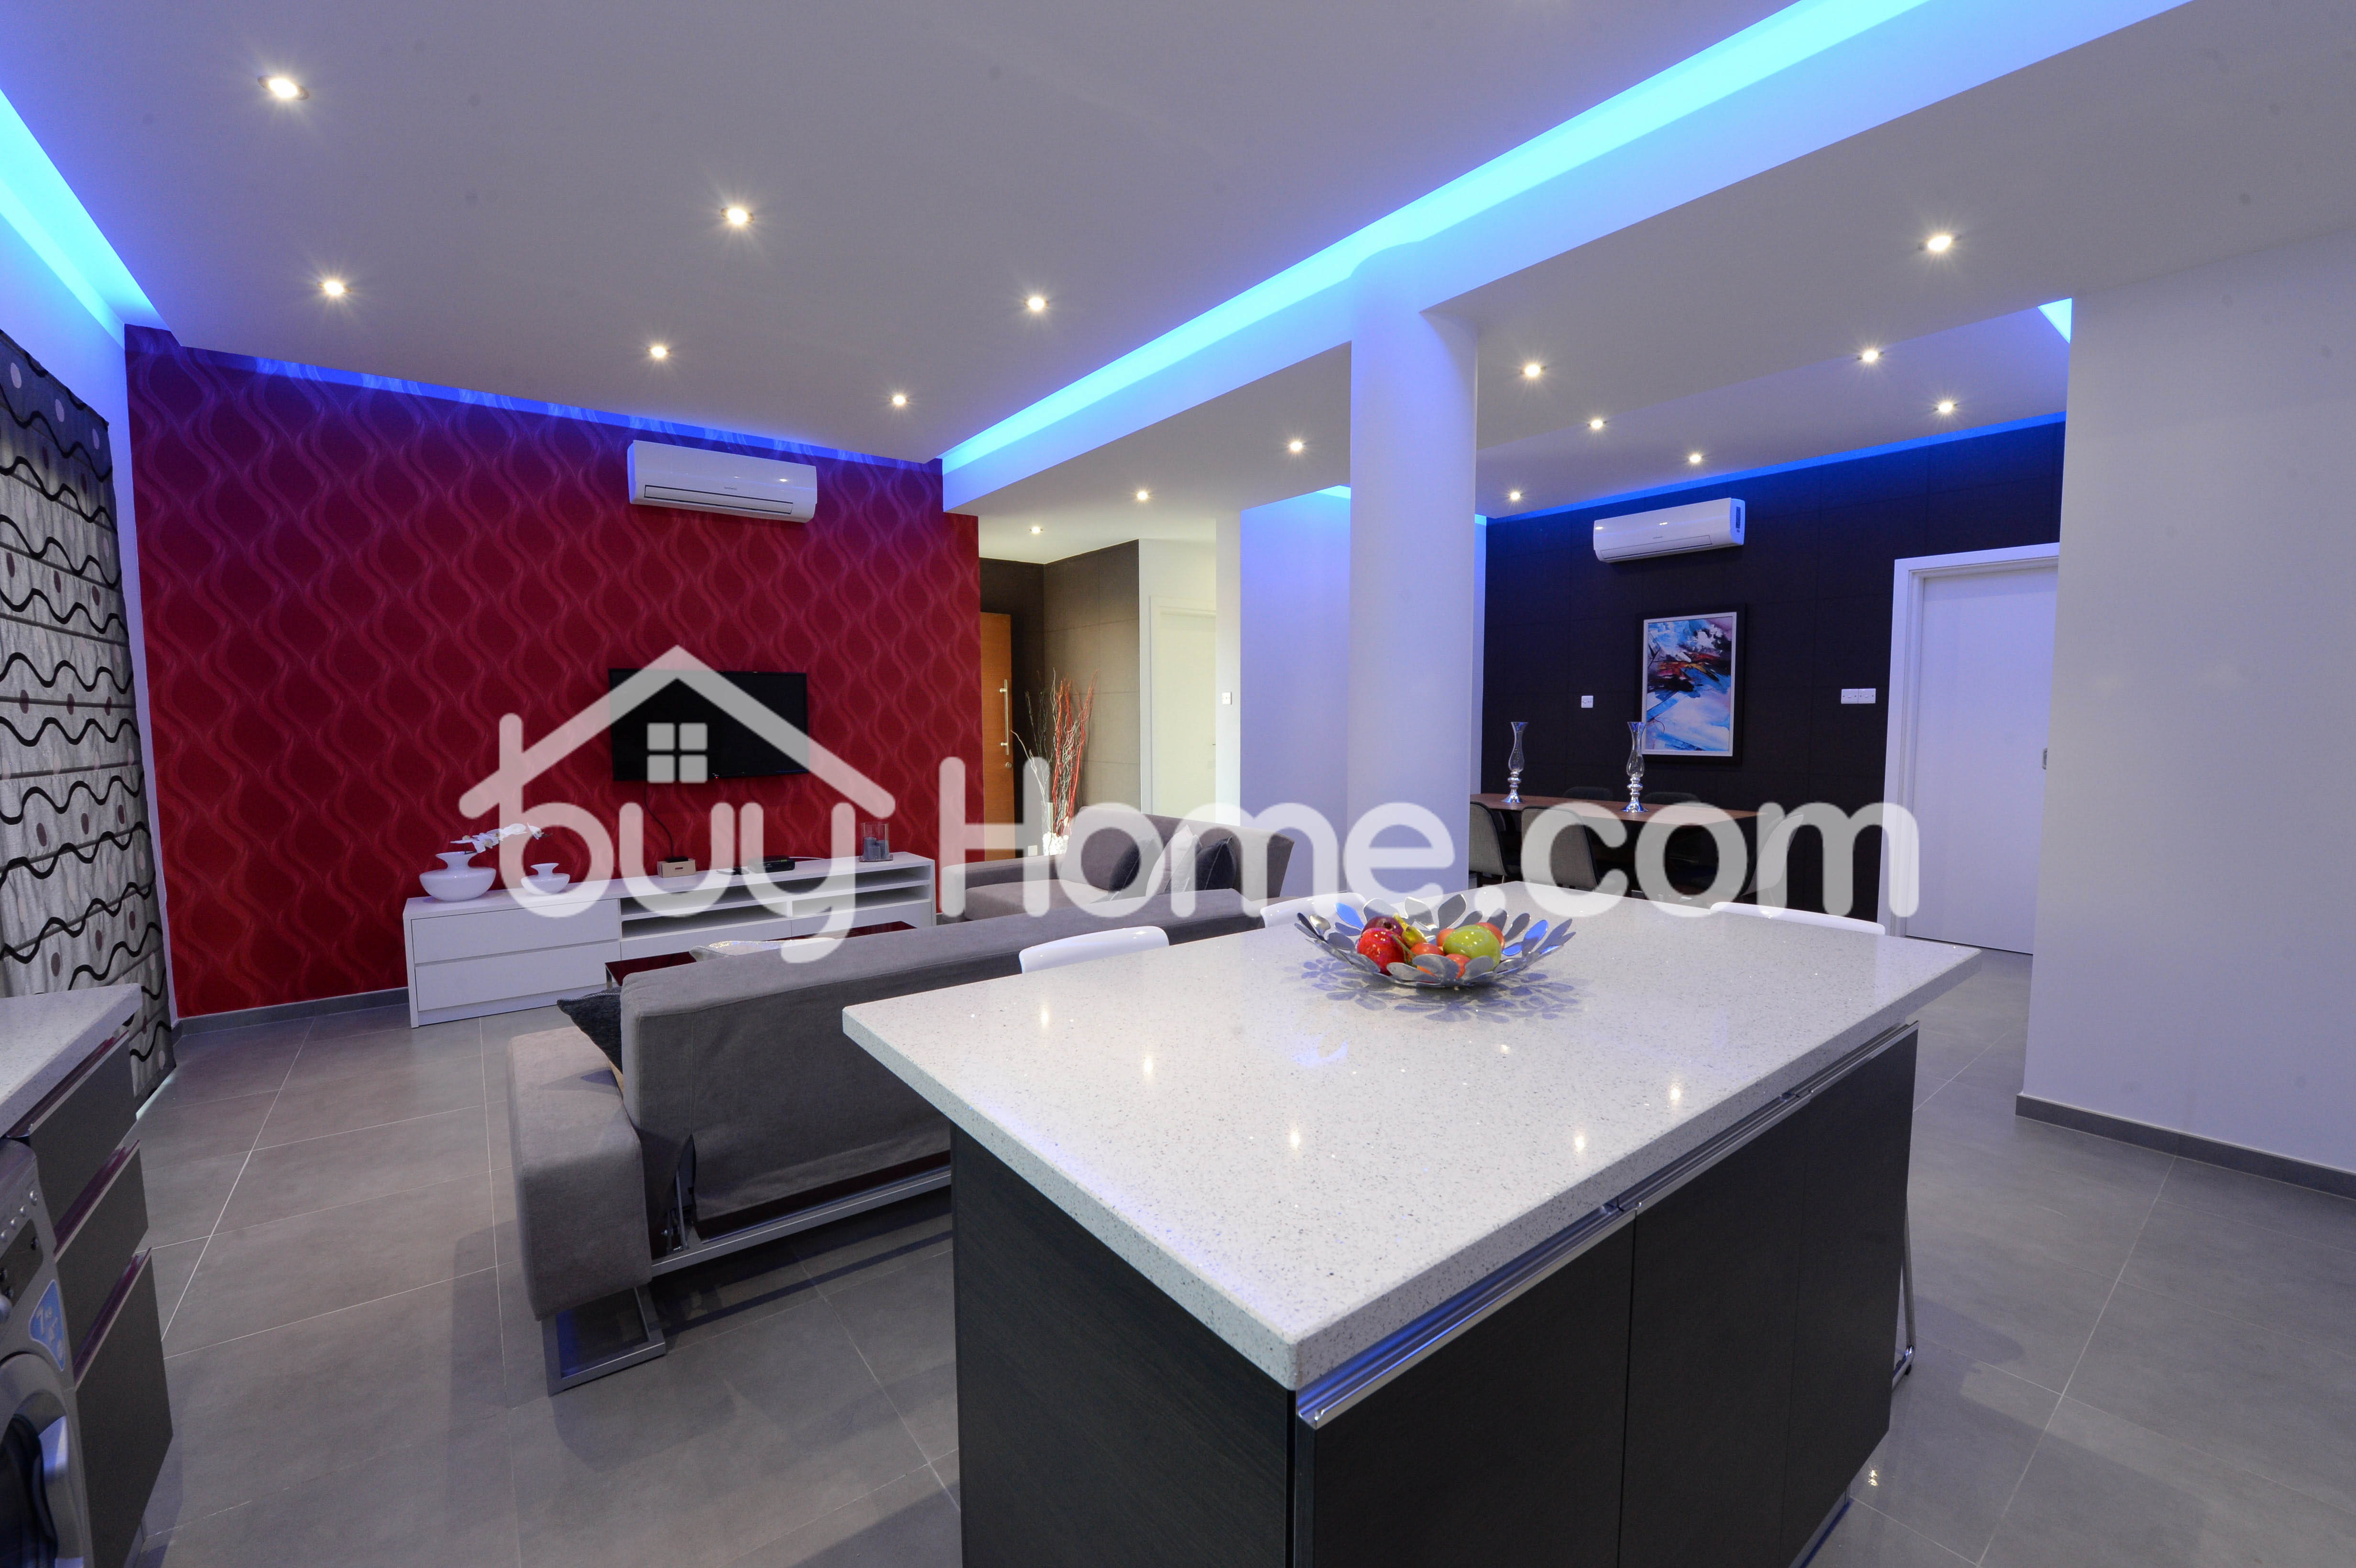 4 Bed Apt For Rent | BuyHome